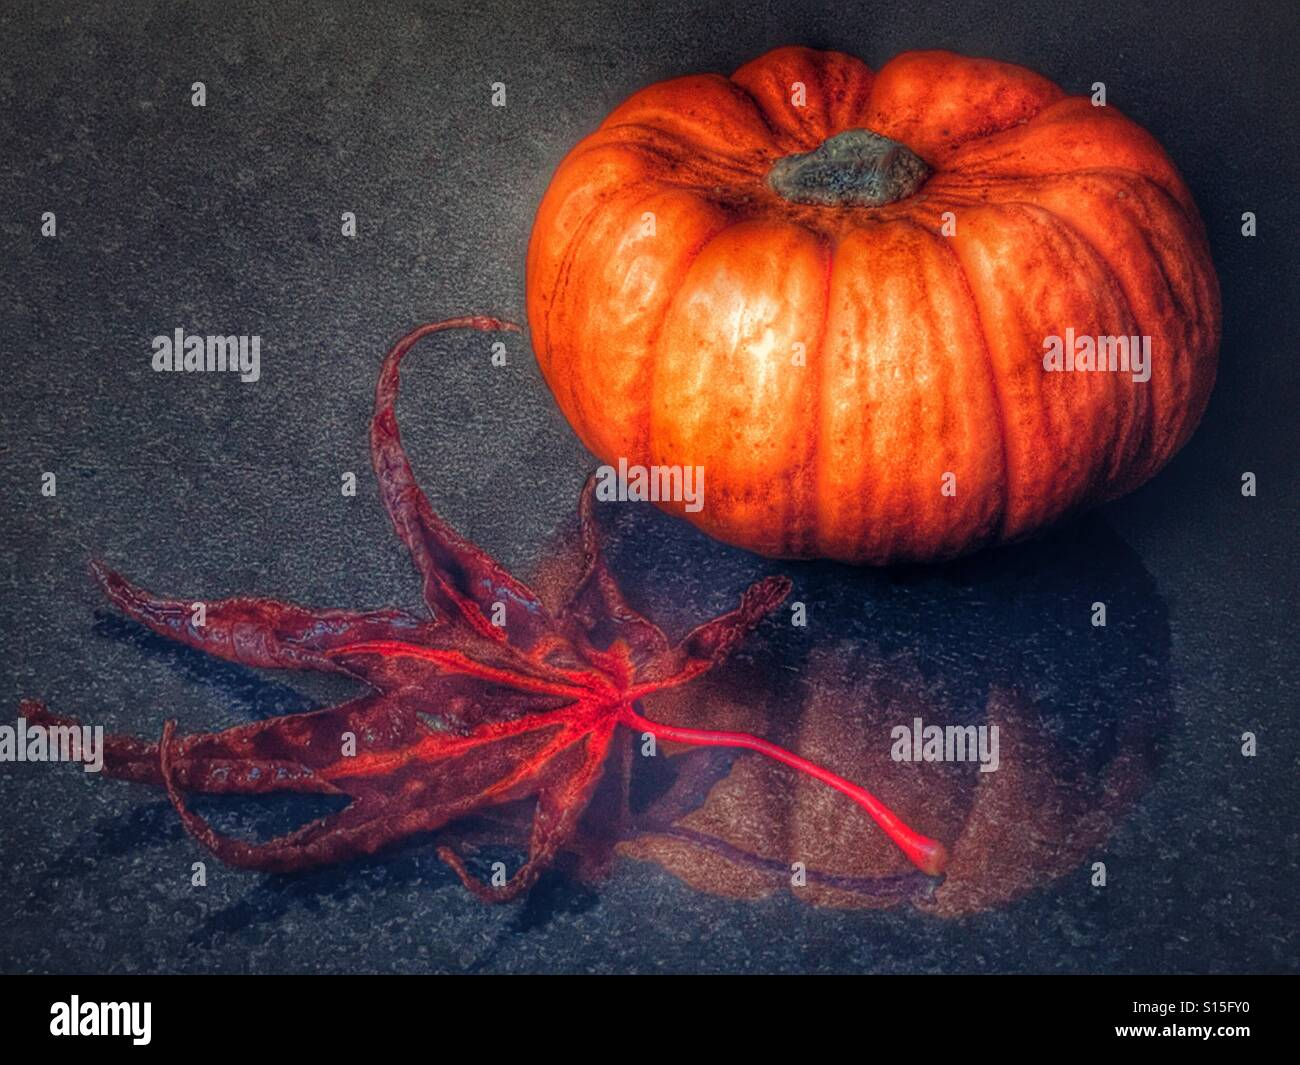 Munchkin pumpkin and red autumn leaf - Stock Image